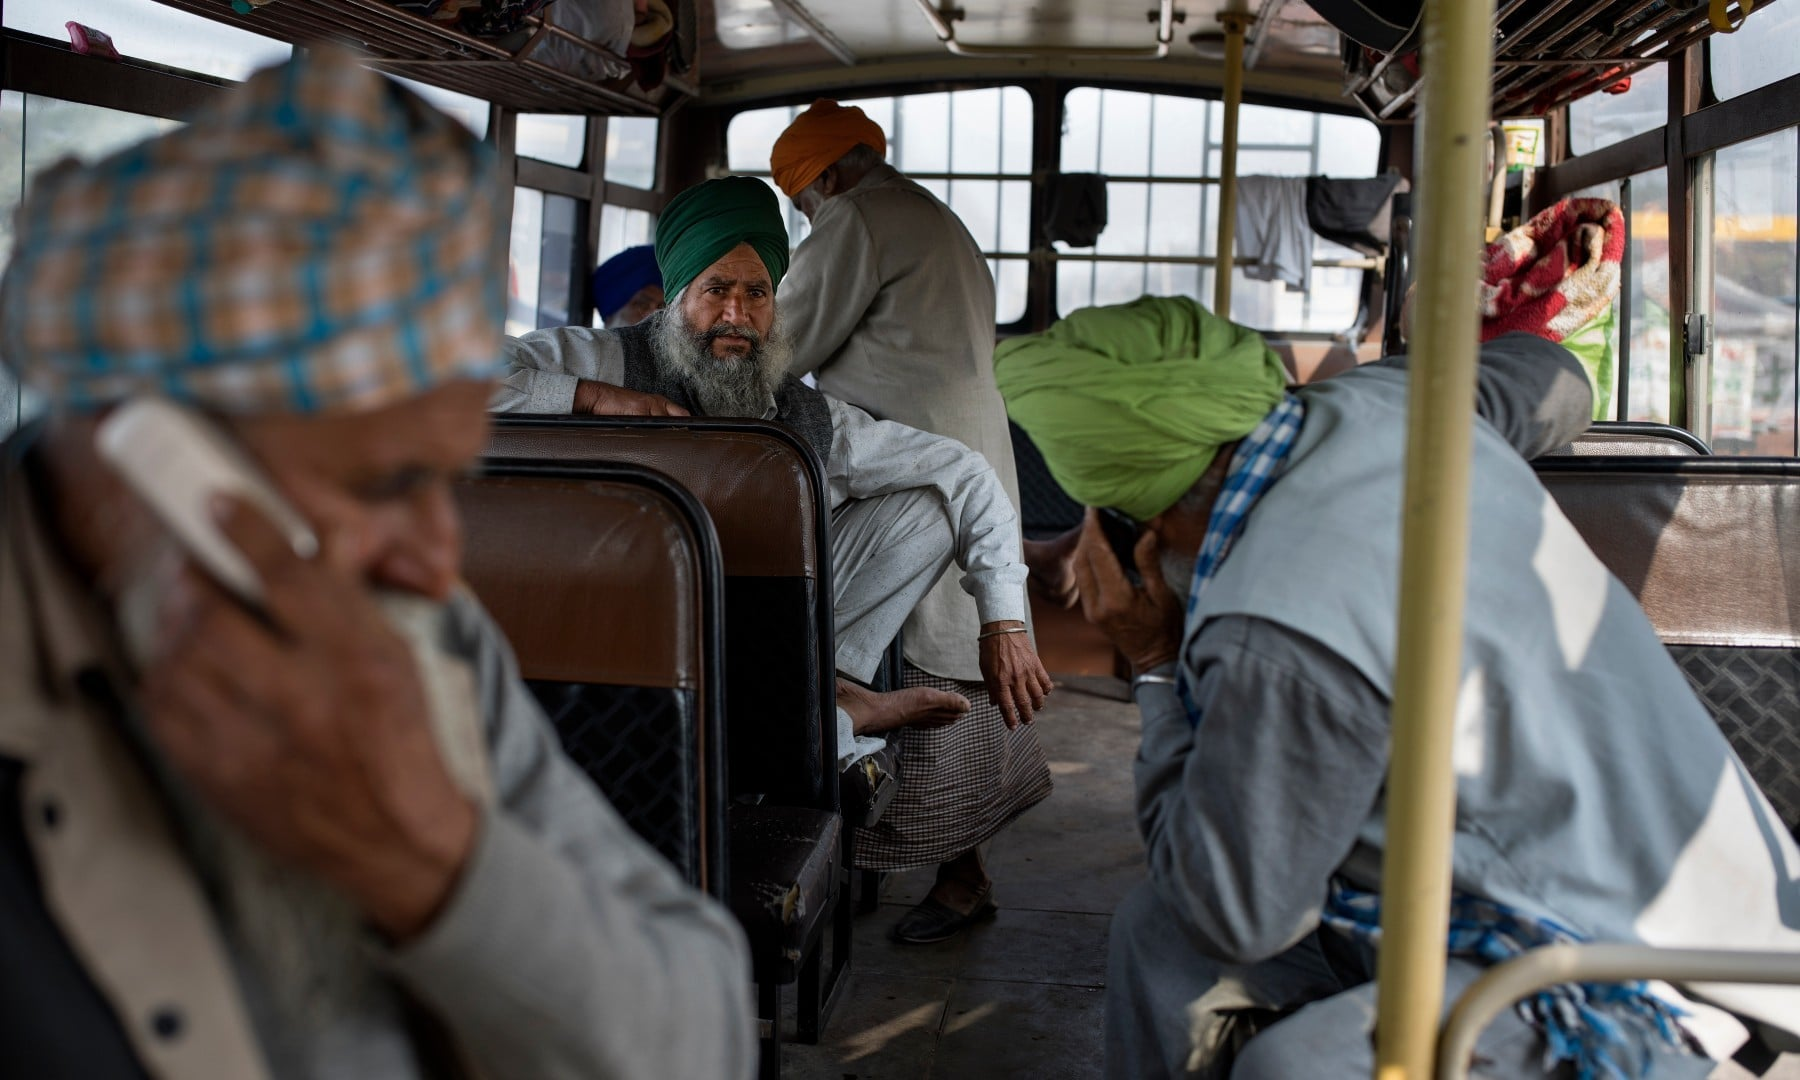 Protesting farmers speak on their mobile phones as they sit inside a school bus in which they traveled to a protest site, at the Delhi-Haryana state border on Dec 1. — AP